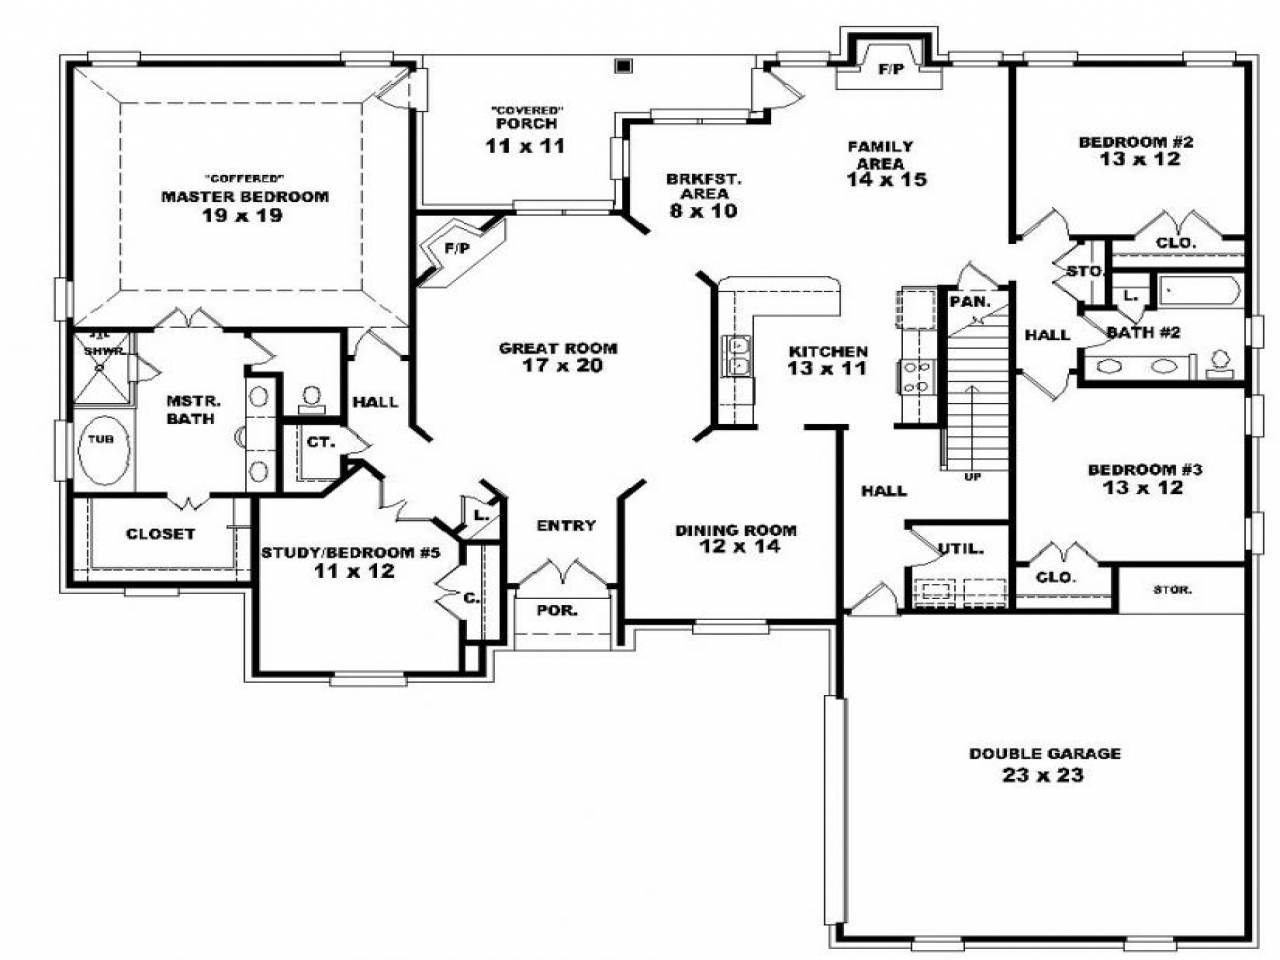 4 bedroom 2 story house plans story 3 bedroom with